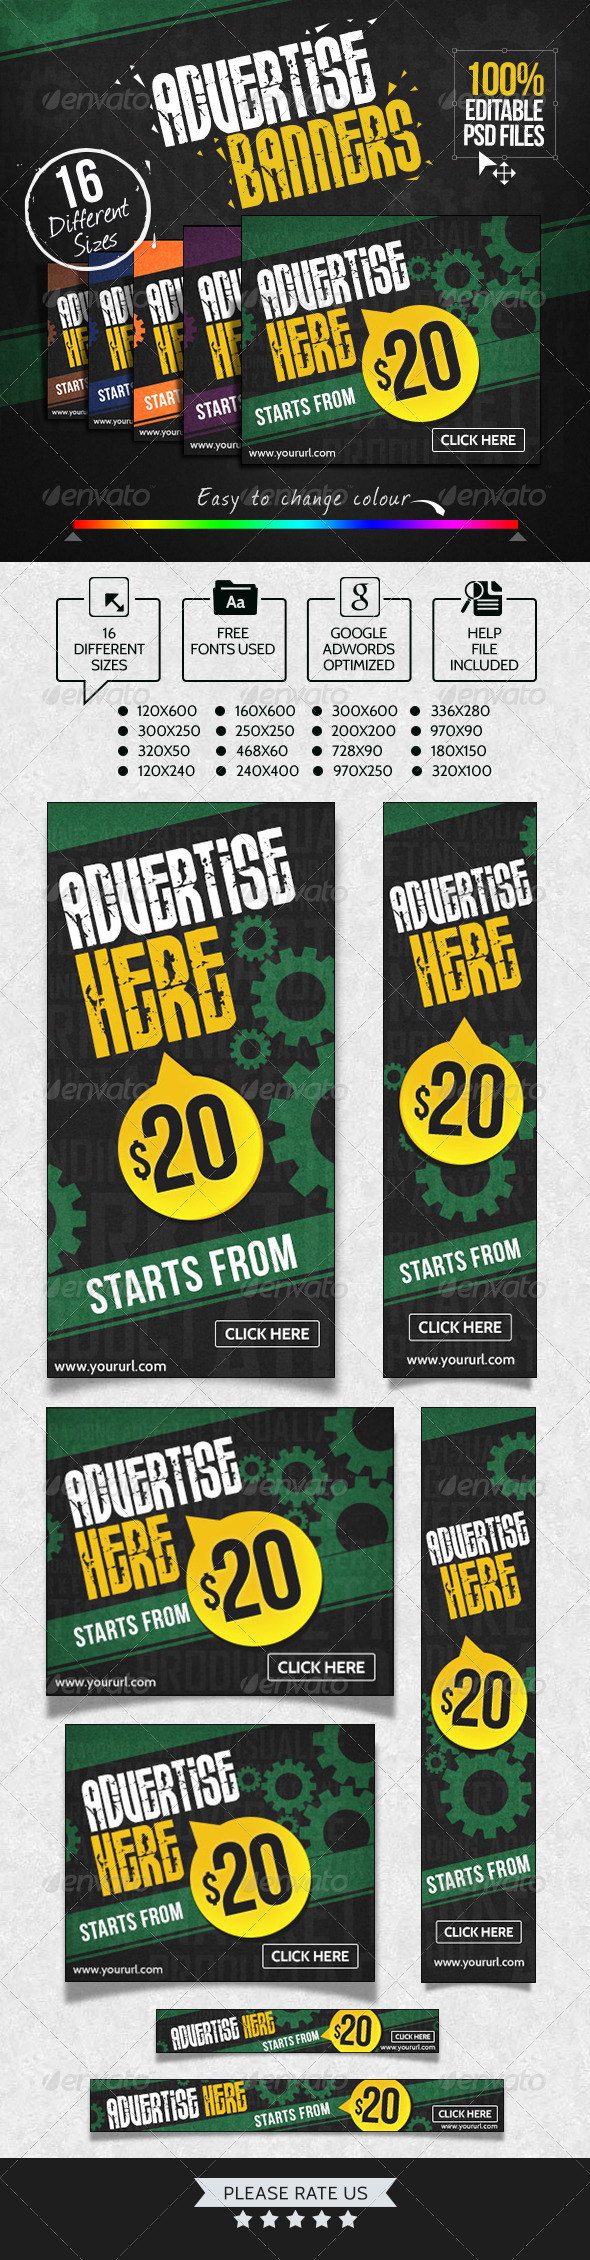 Advertise Here Banner Set - Banners & Ads Web Elements